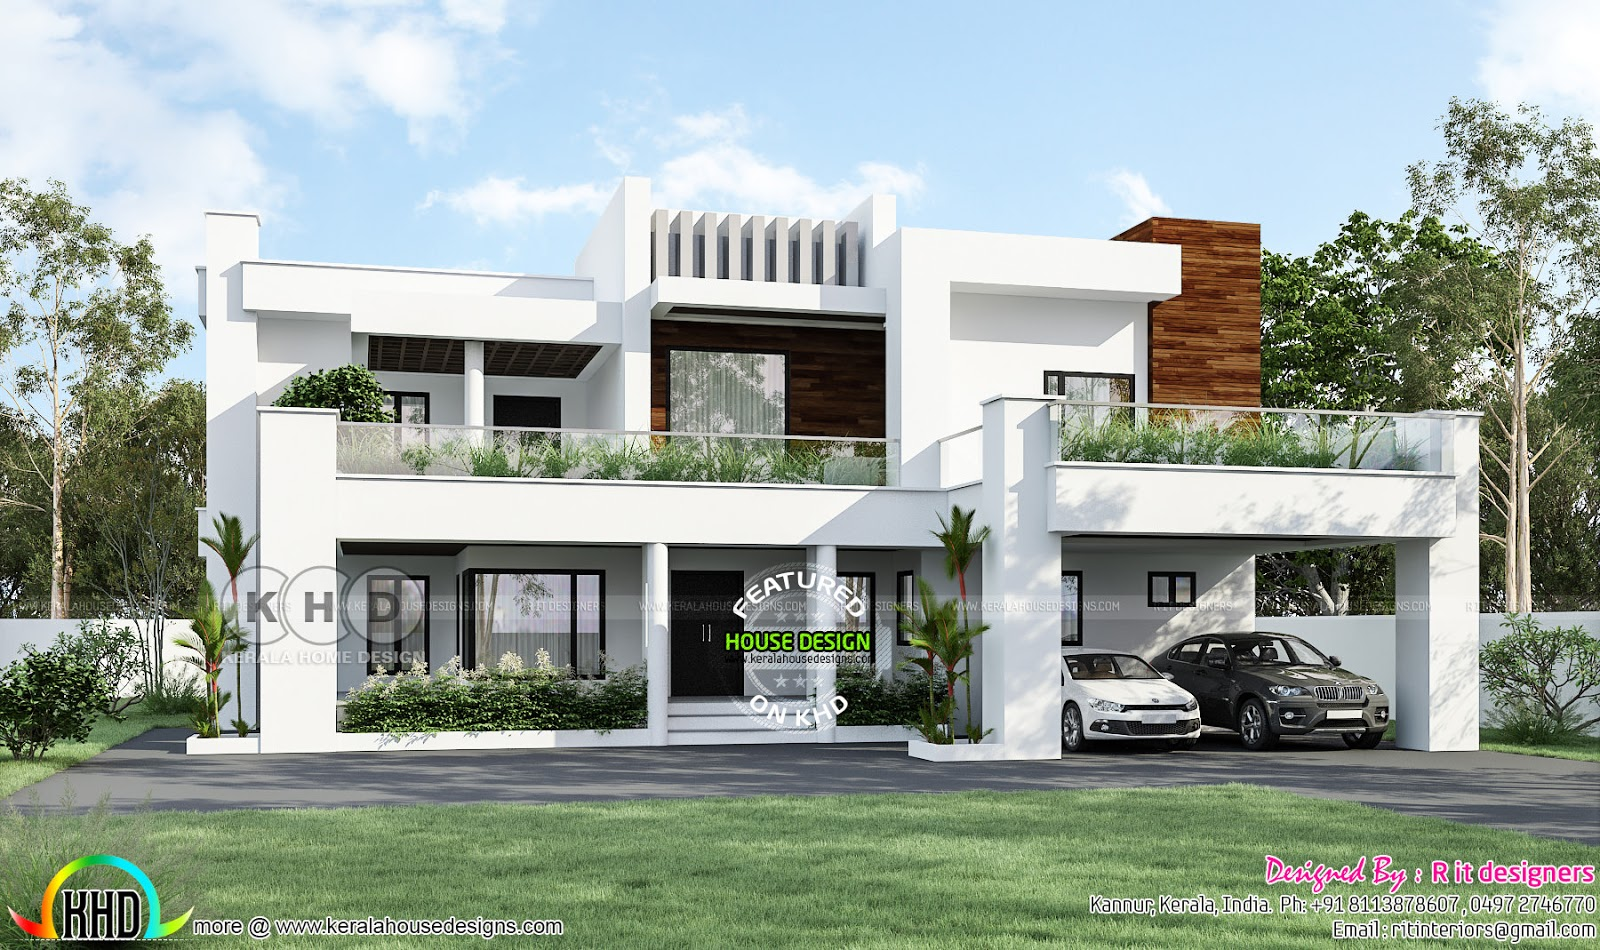 5 Bedroom Contemporary Luxury Home Kerala Home Design Bloglovin,Orange Kitchen Accessories Ideas